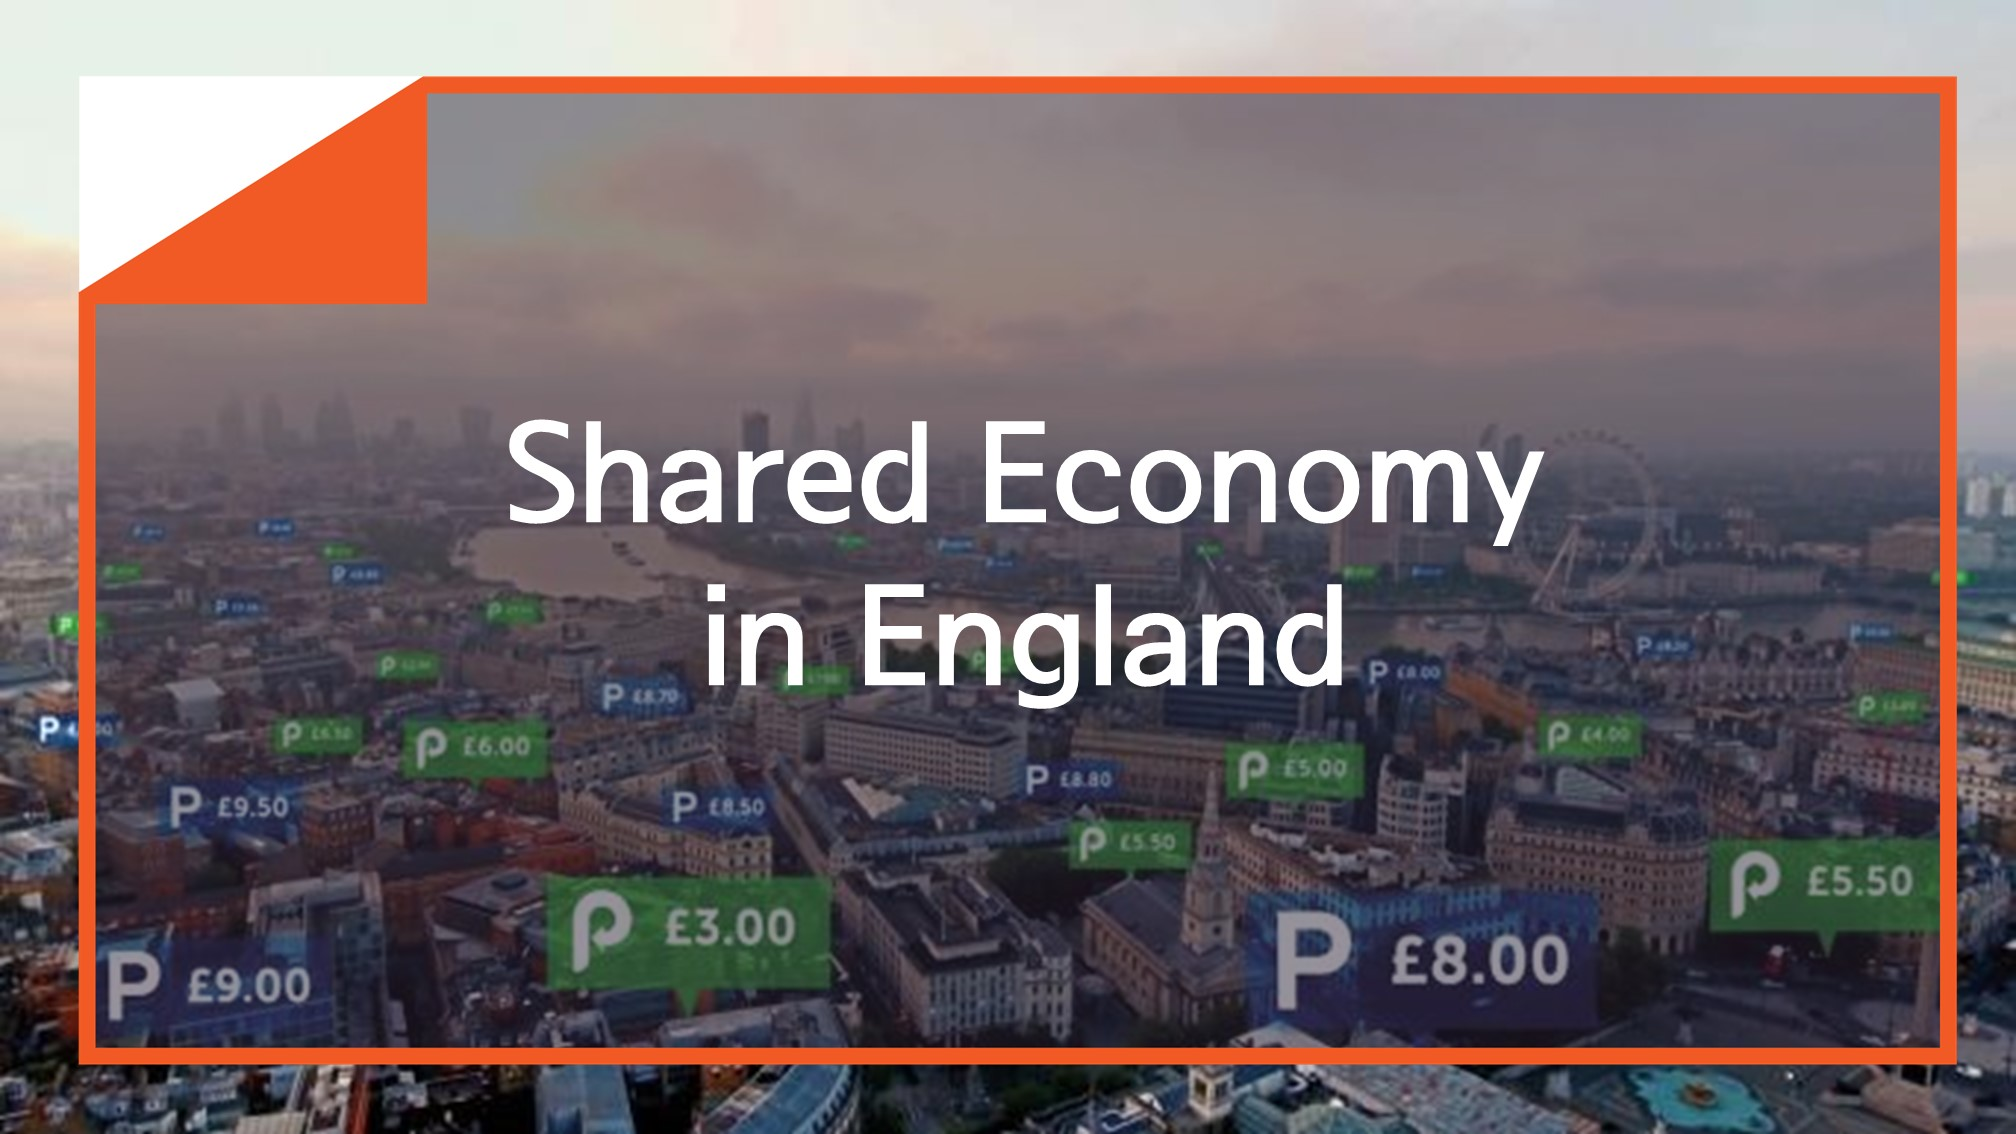 [Resources] Shared Economy in England